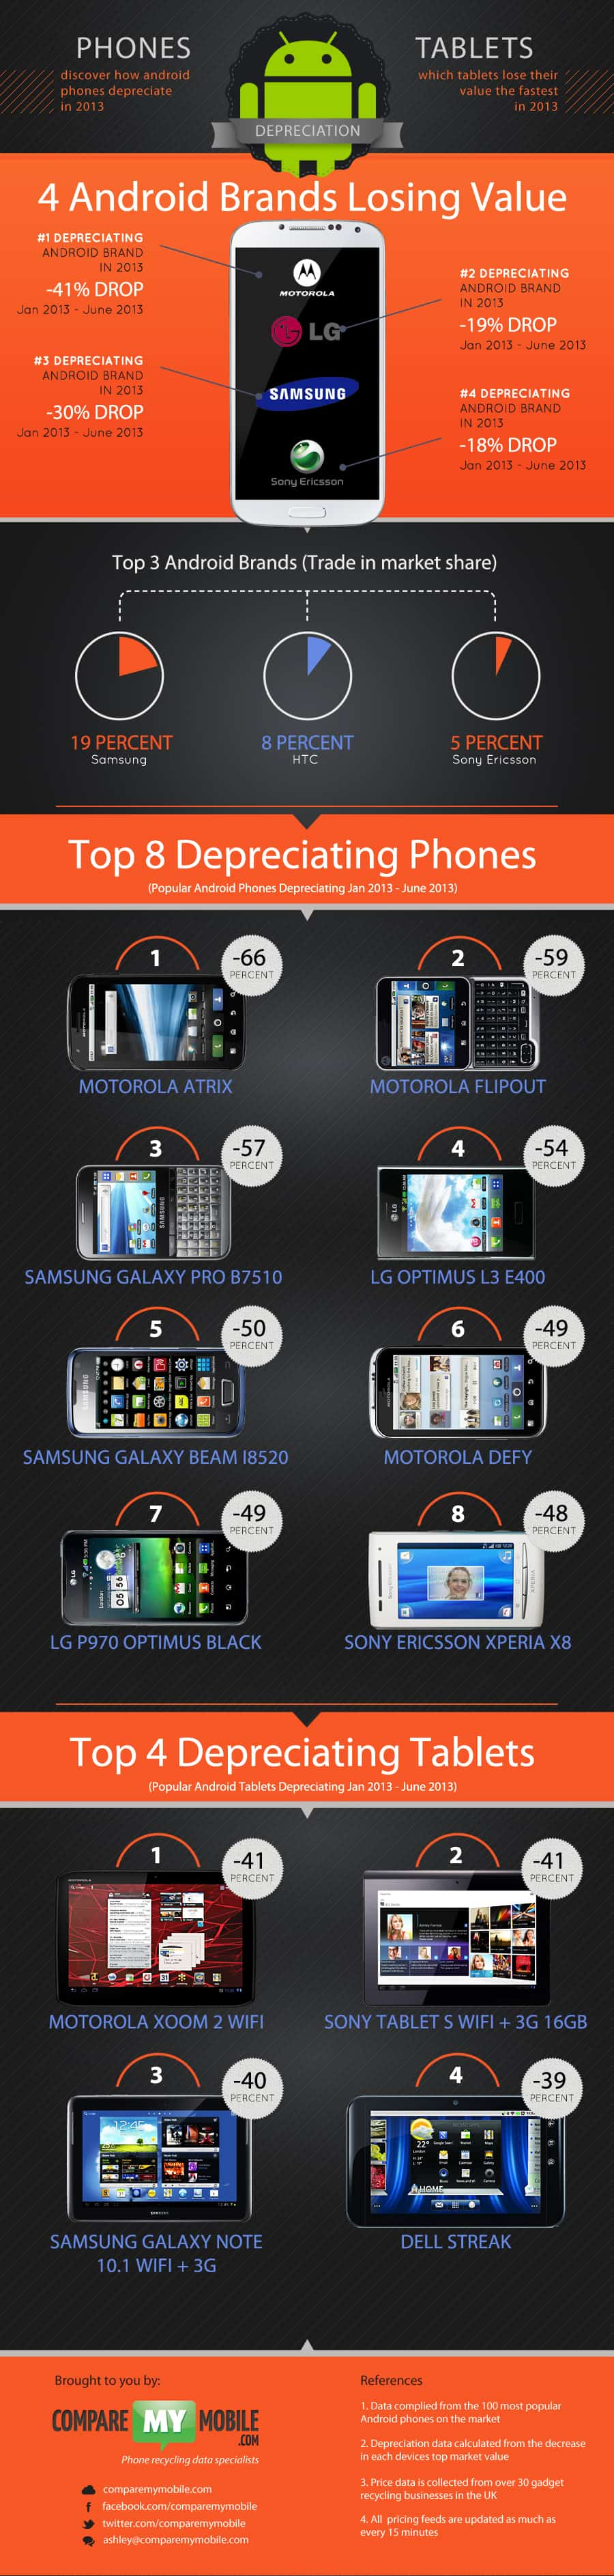 Infographic- 2013 brand and device depreciation